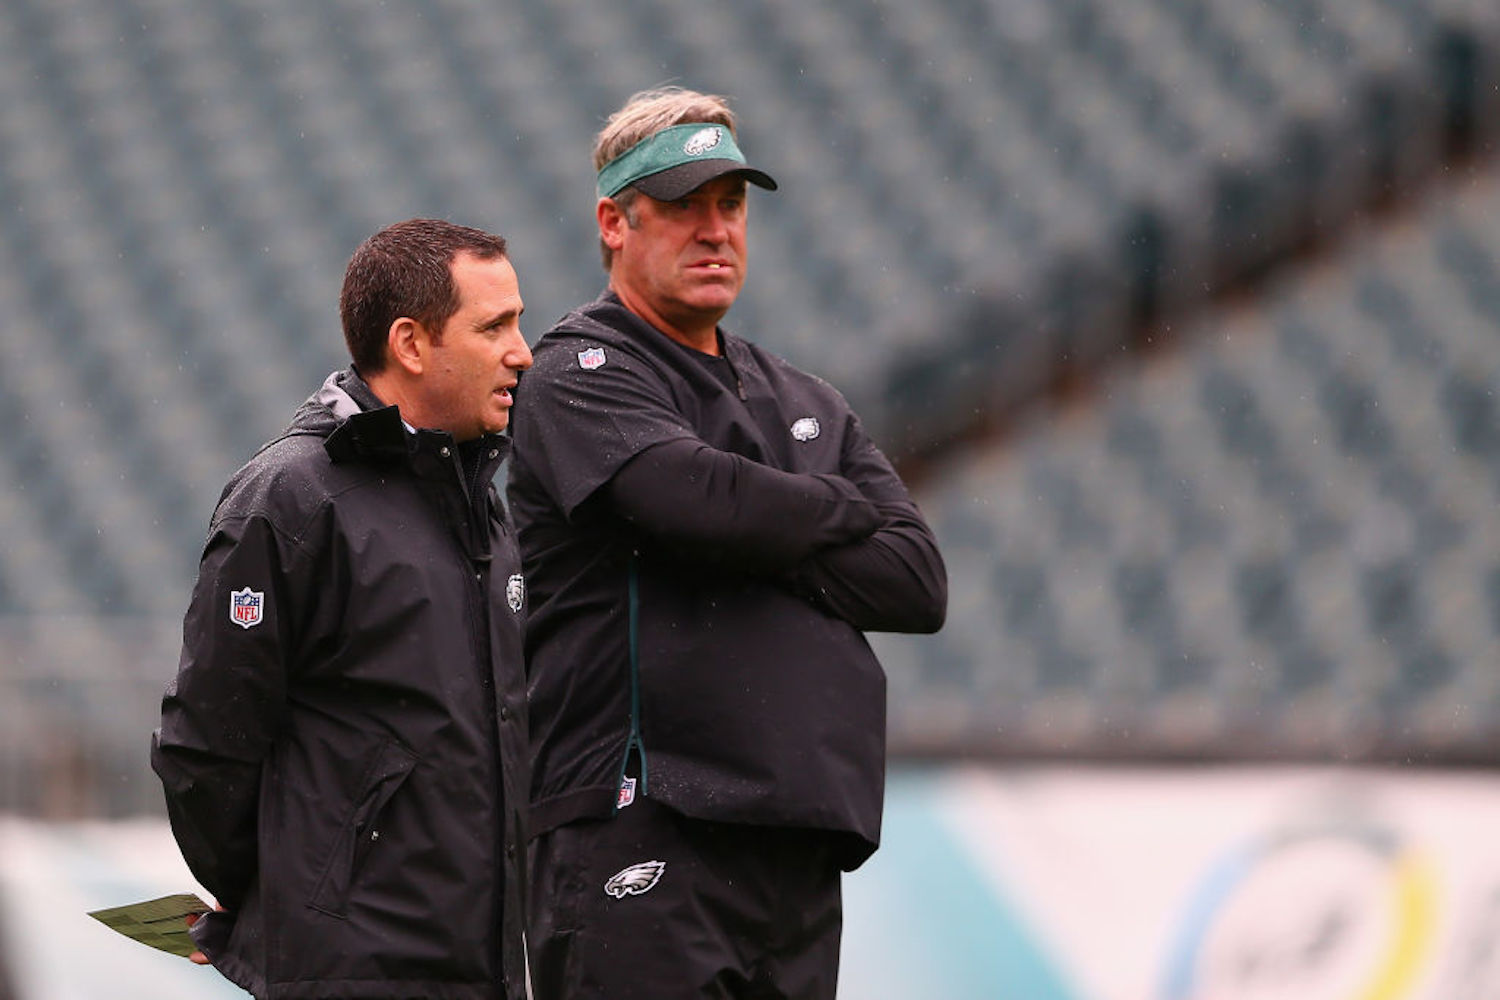 Doug Pederson is out as the head coach of the Philadelphia Eagles, but the team's biggest problem still resides in the front office.